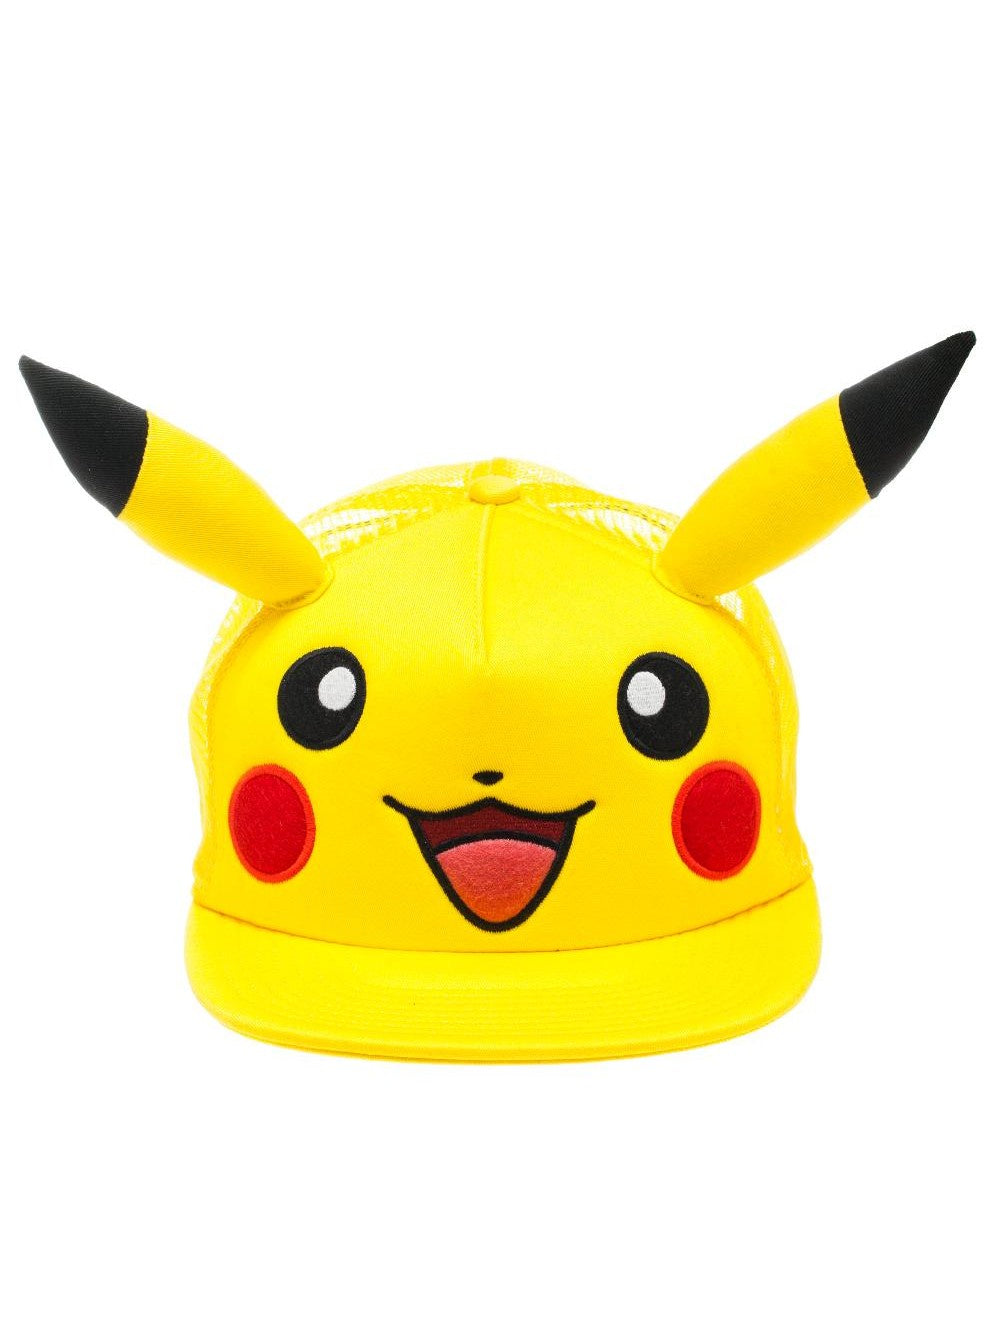 POKEMON - Pikachu Big Face Cap with Ears Yellow